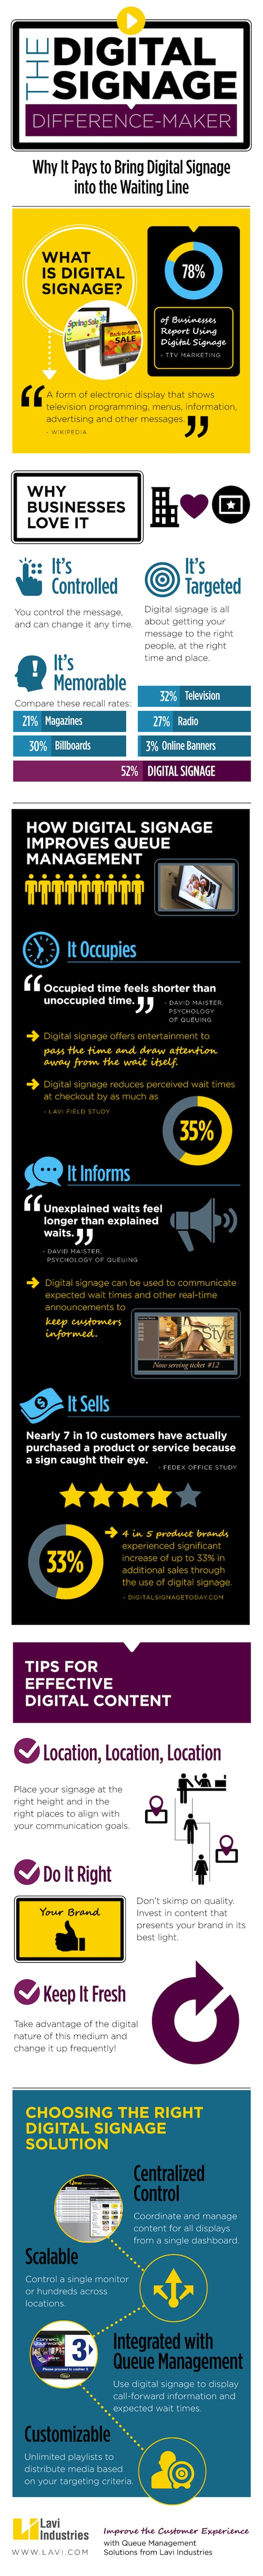 http://blog.lavi.com/wp-content/uploads/2013/12/Digital-Signage-infographic-FINAL-blogsize.jpg